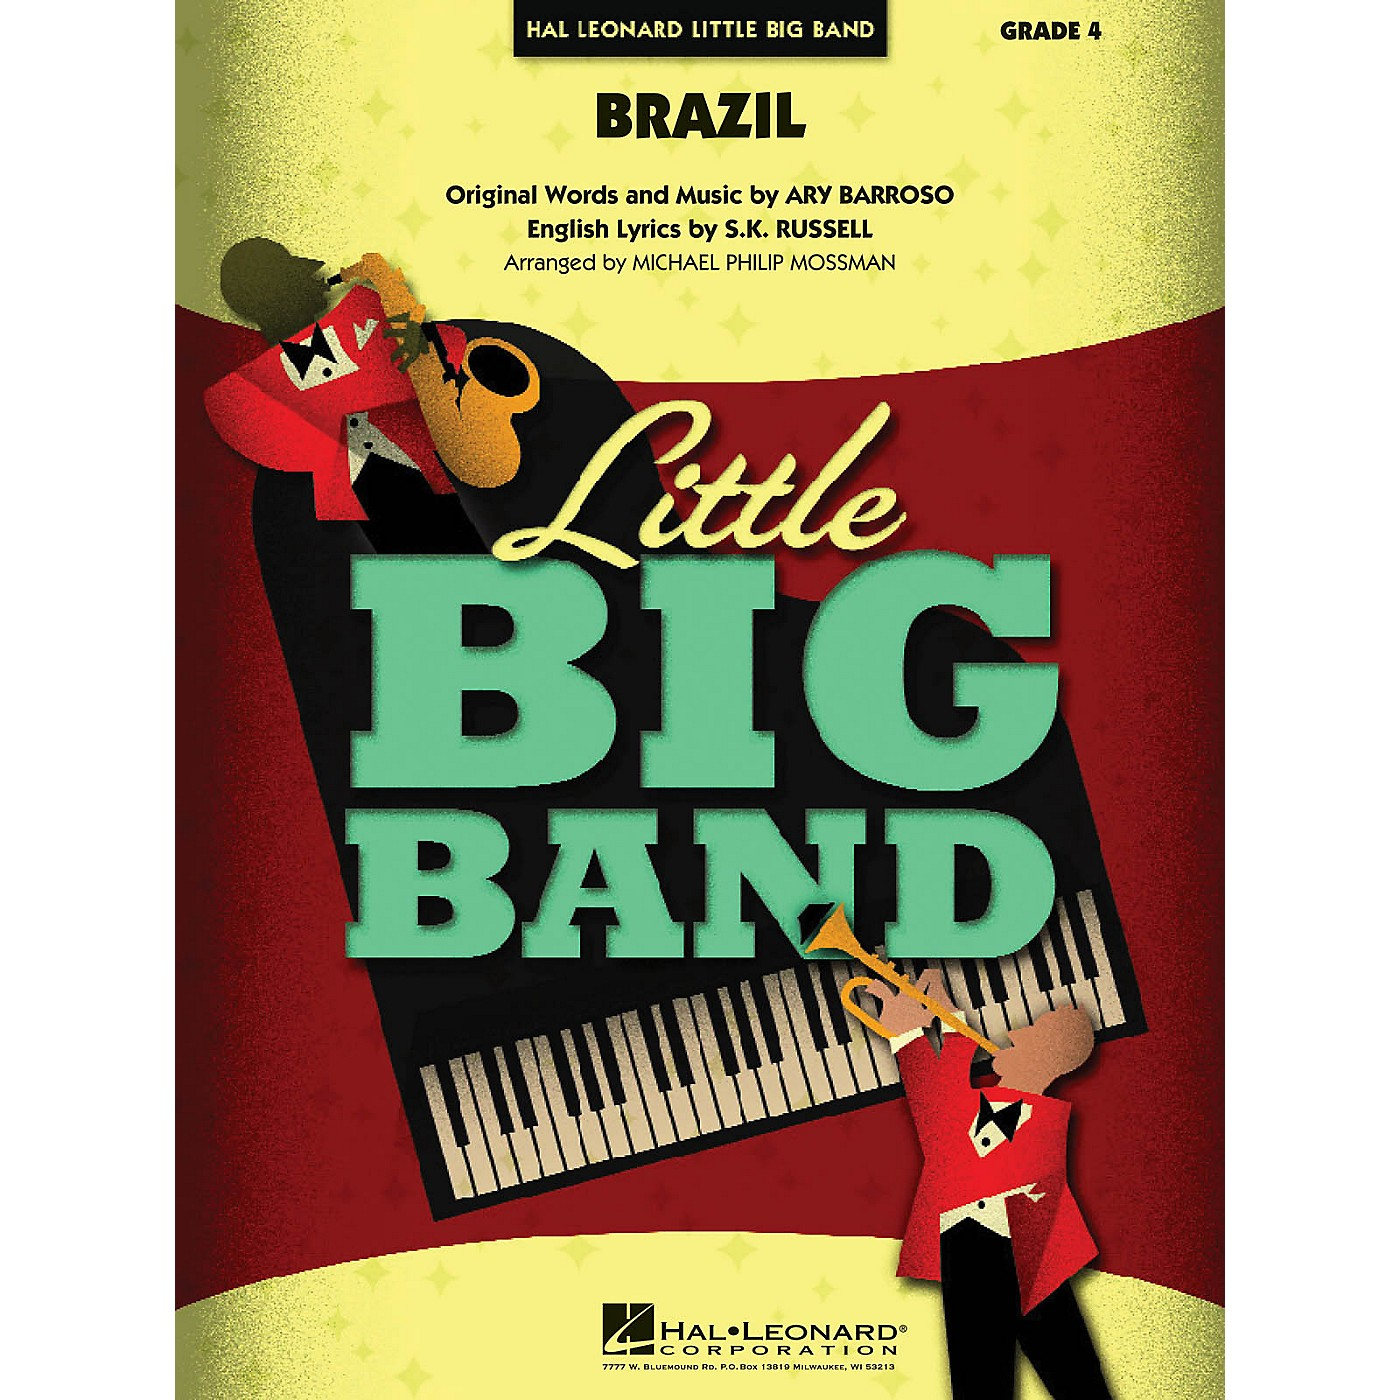 Hal Leonard Brazil Jazz Band Level 4 Arranged by Michael Philip Mossman thumbnail